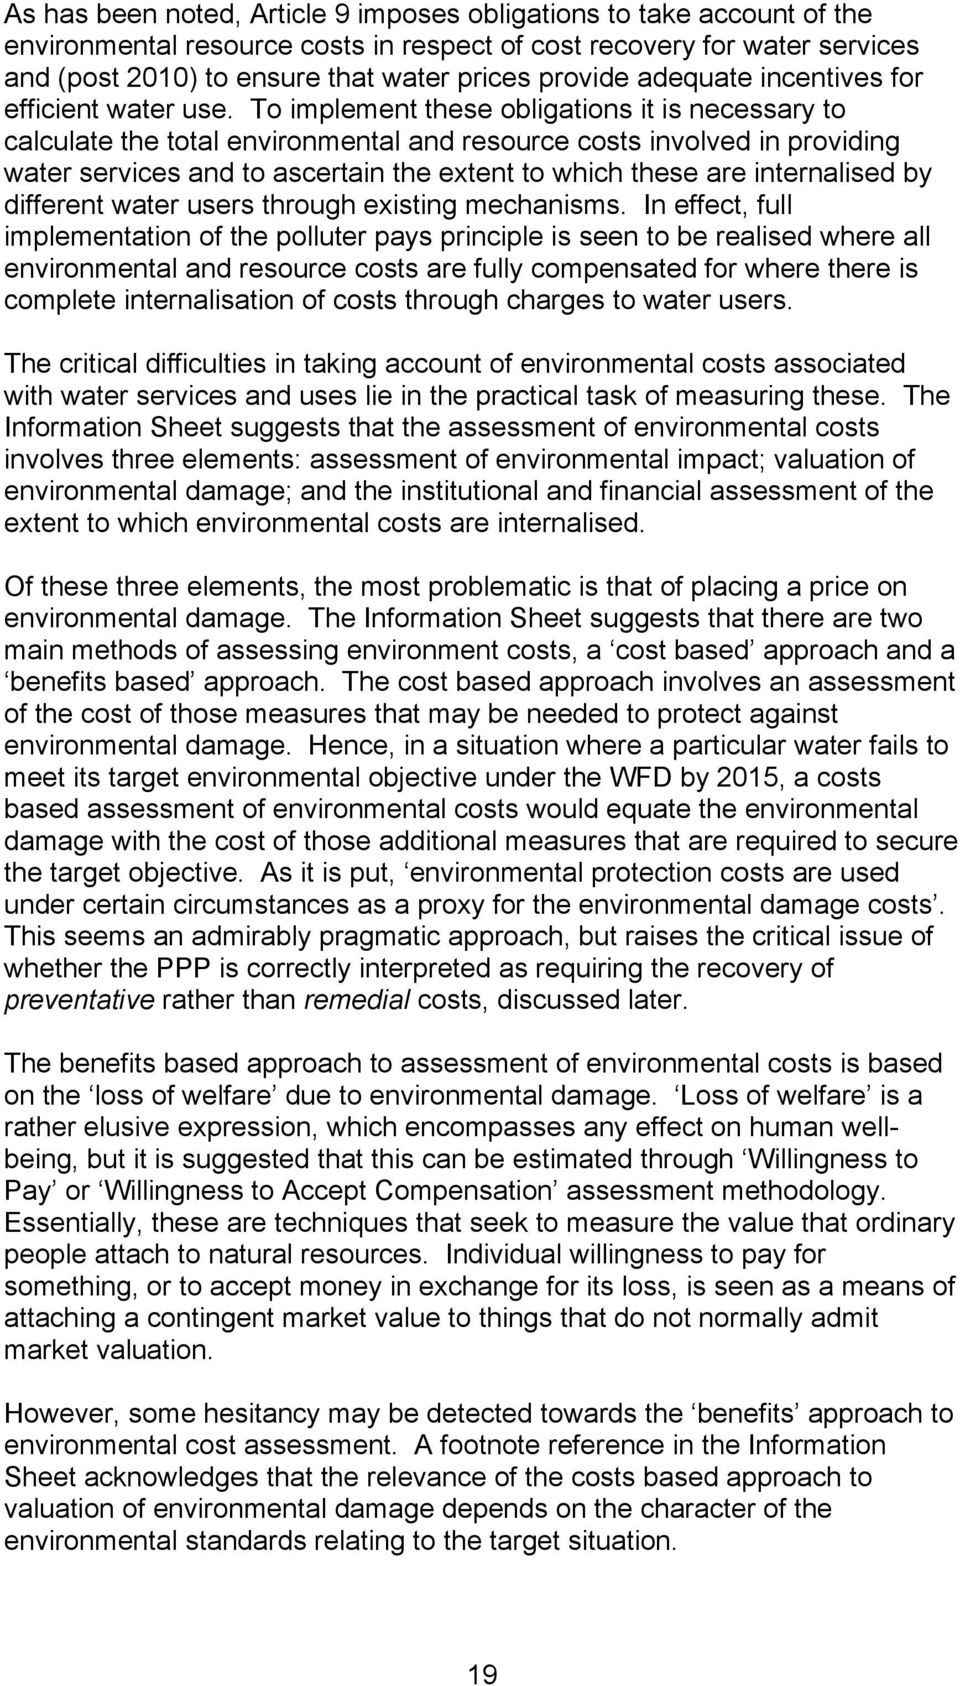 To implement these obligations it is necessary to calculate the total environmental and resource costs involved in providing water services and to ascertain the extent to which these are internalised